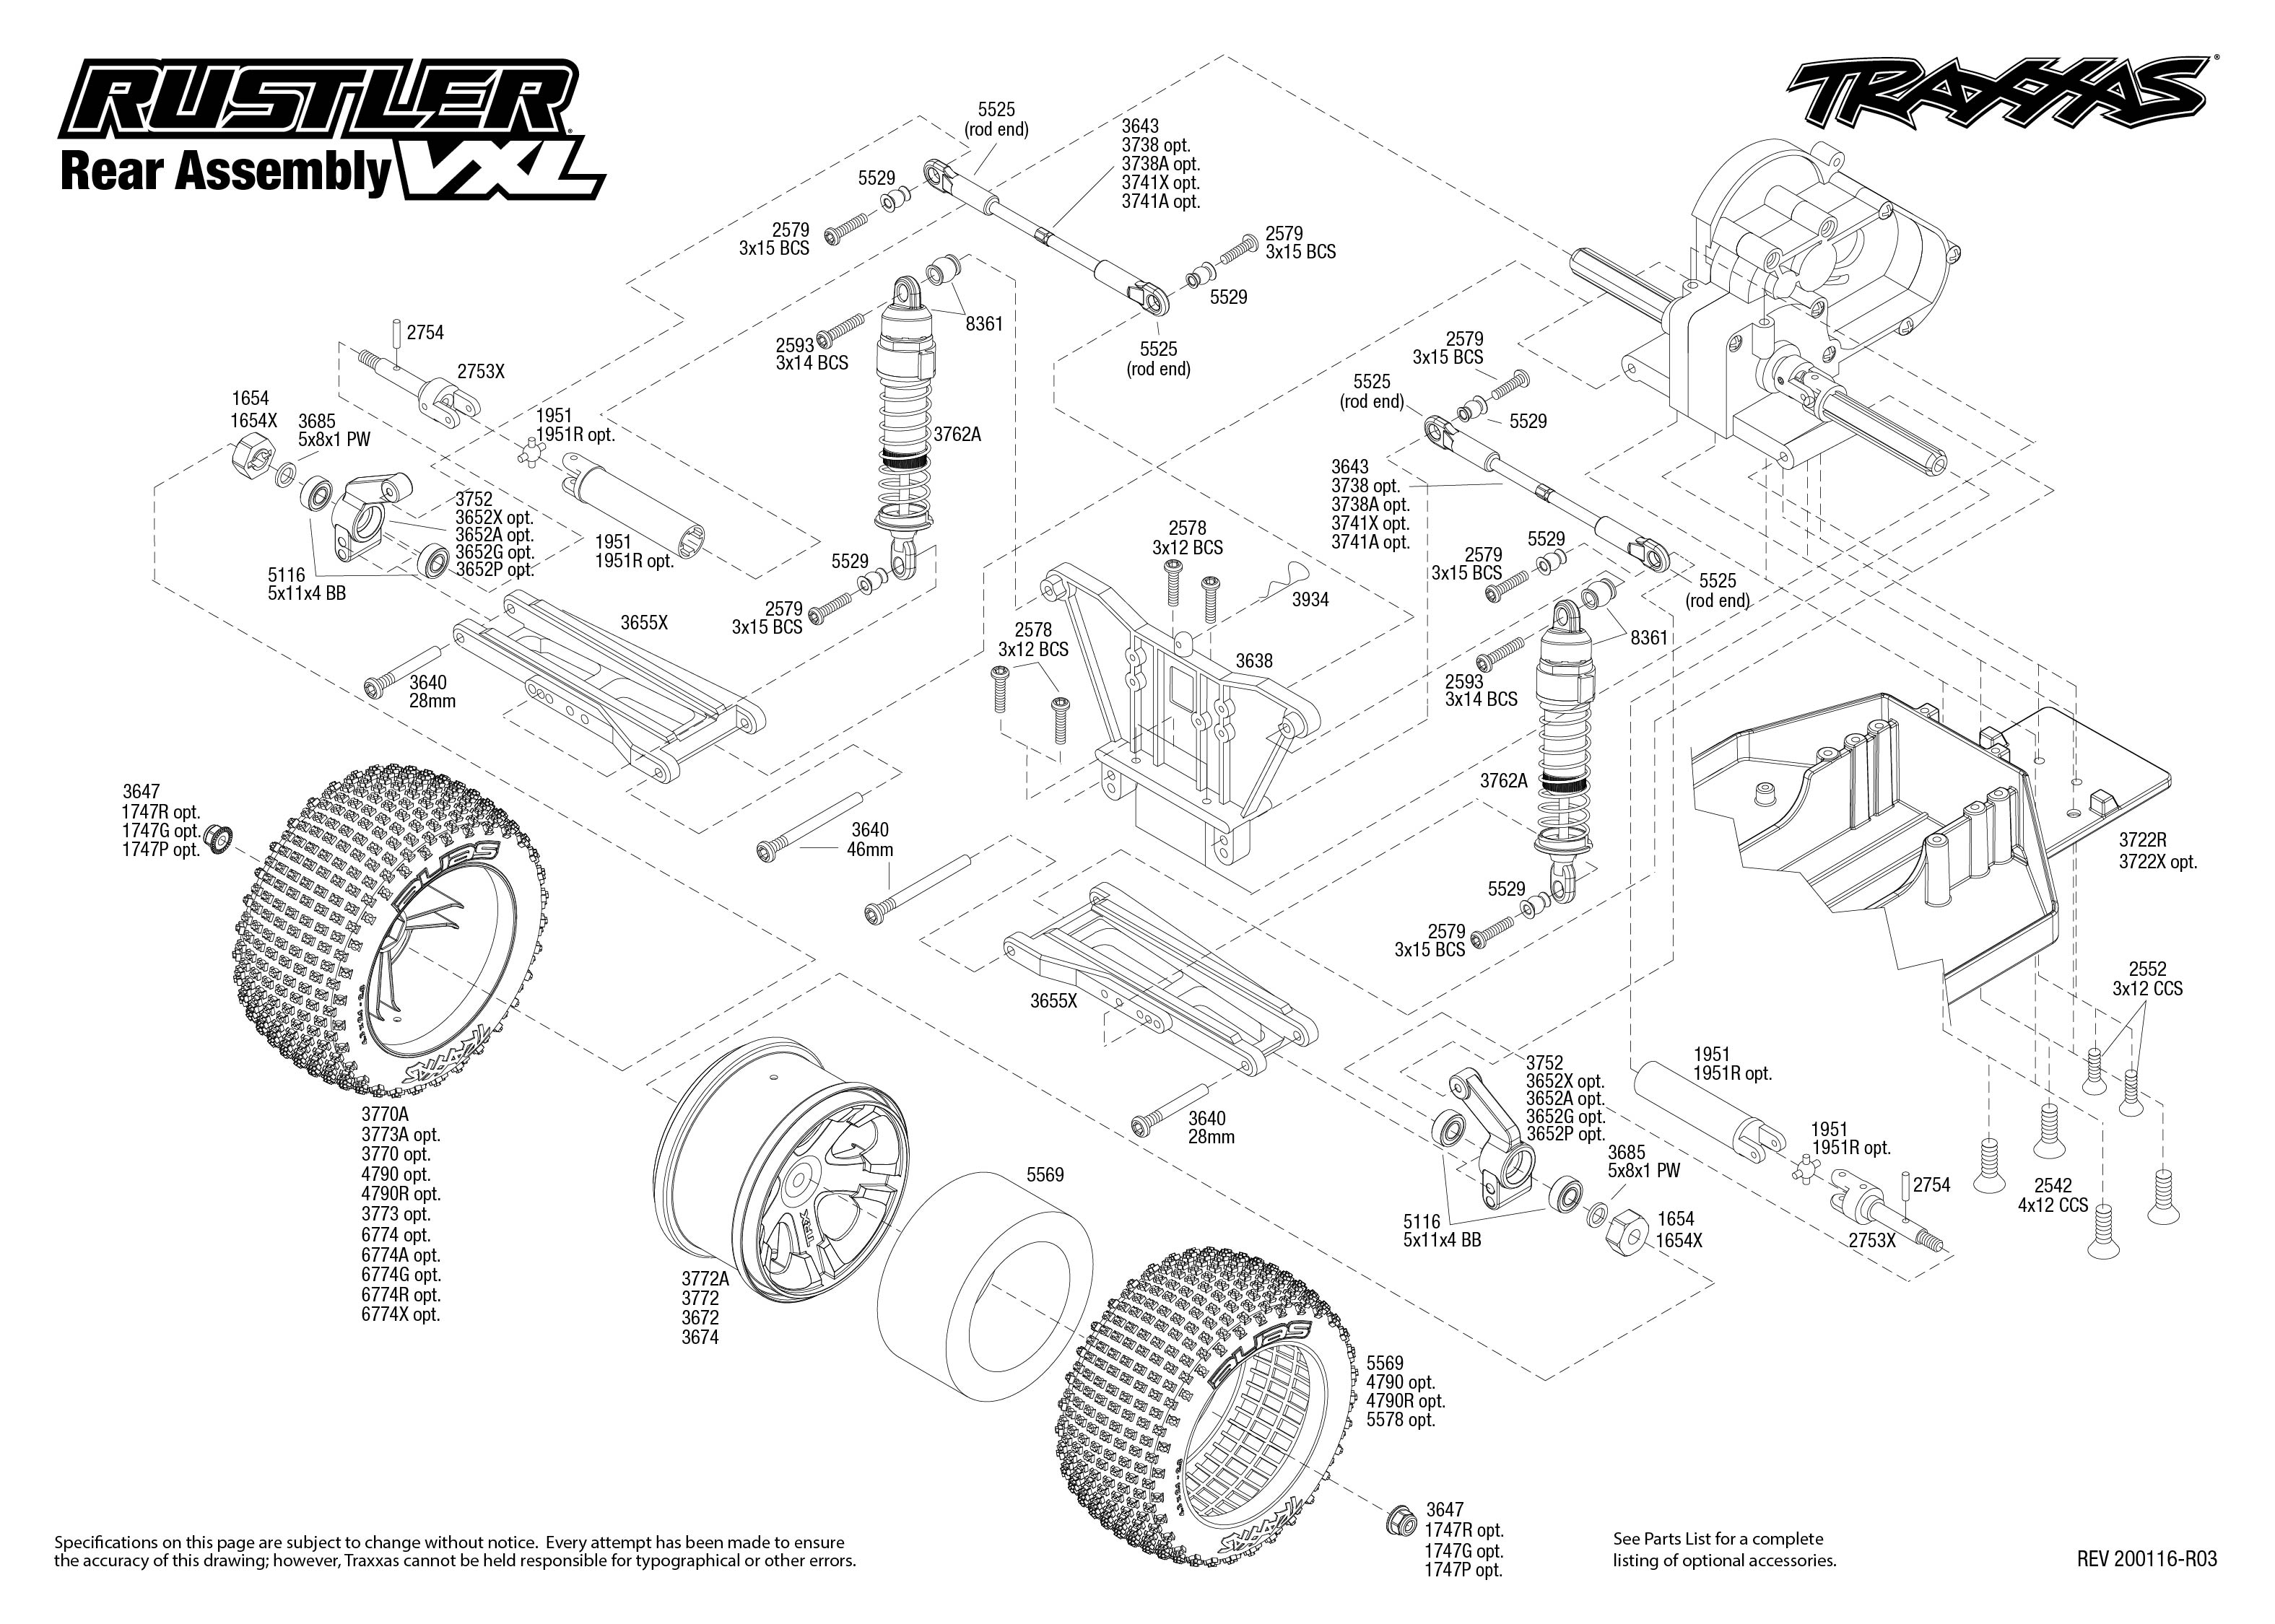 Rustler Vxl 4 Rear Assembly Exploded View